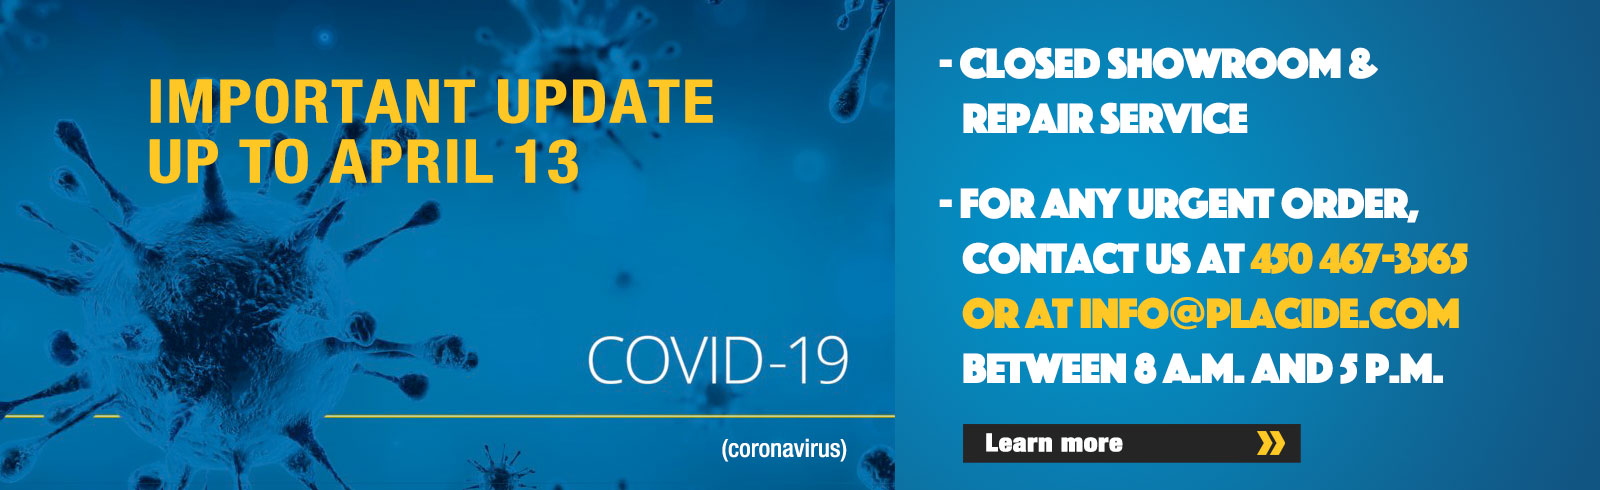 Covid-19 : Important update up to April 13 2020